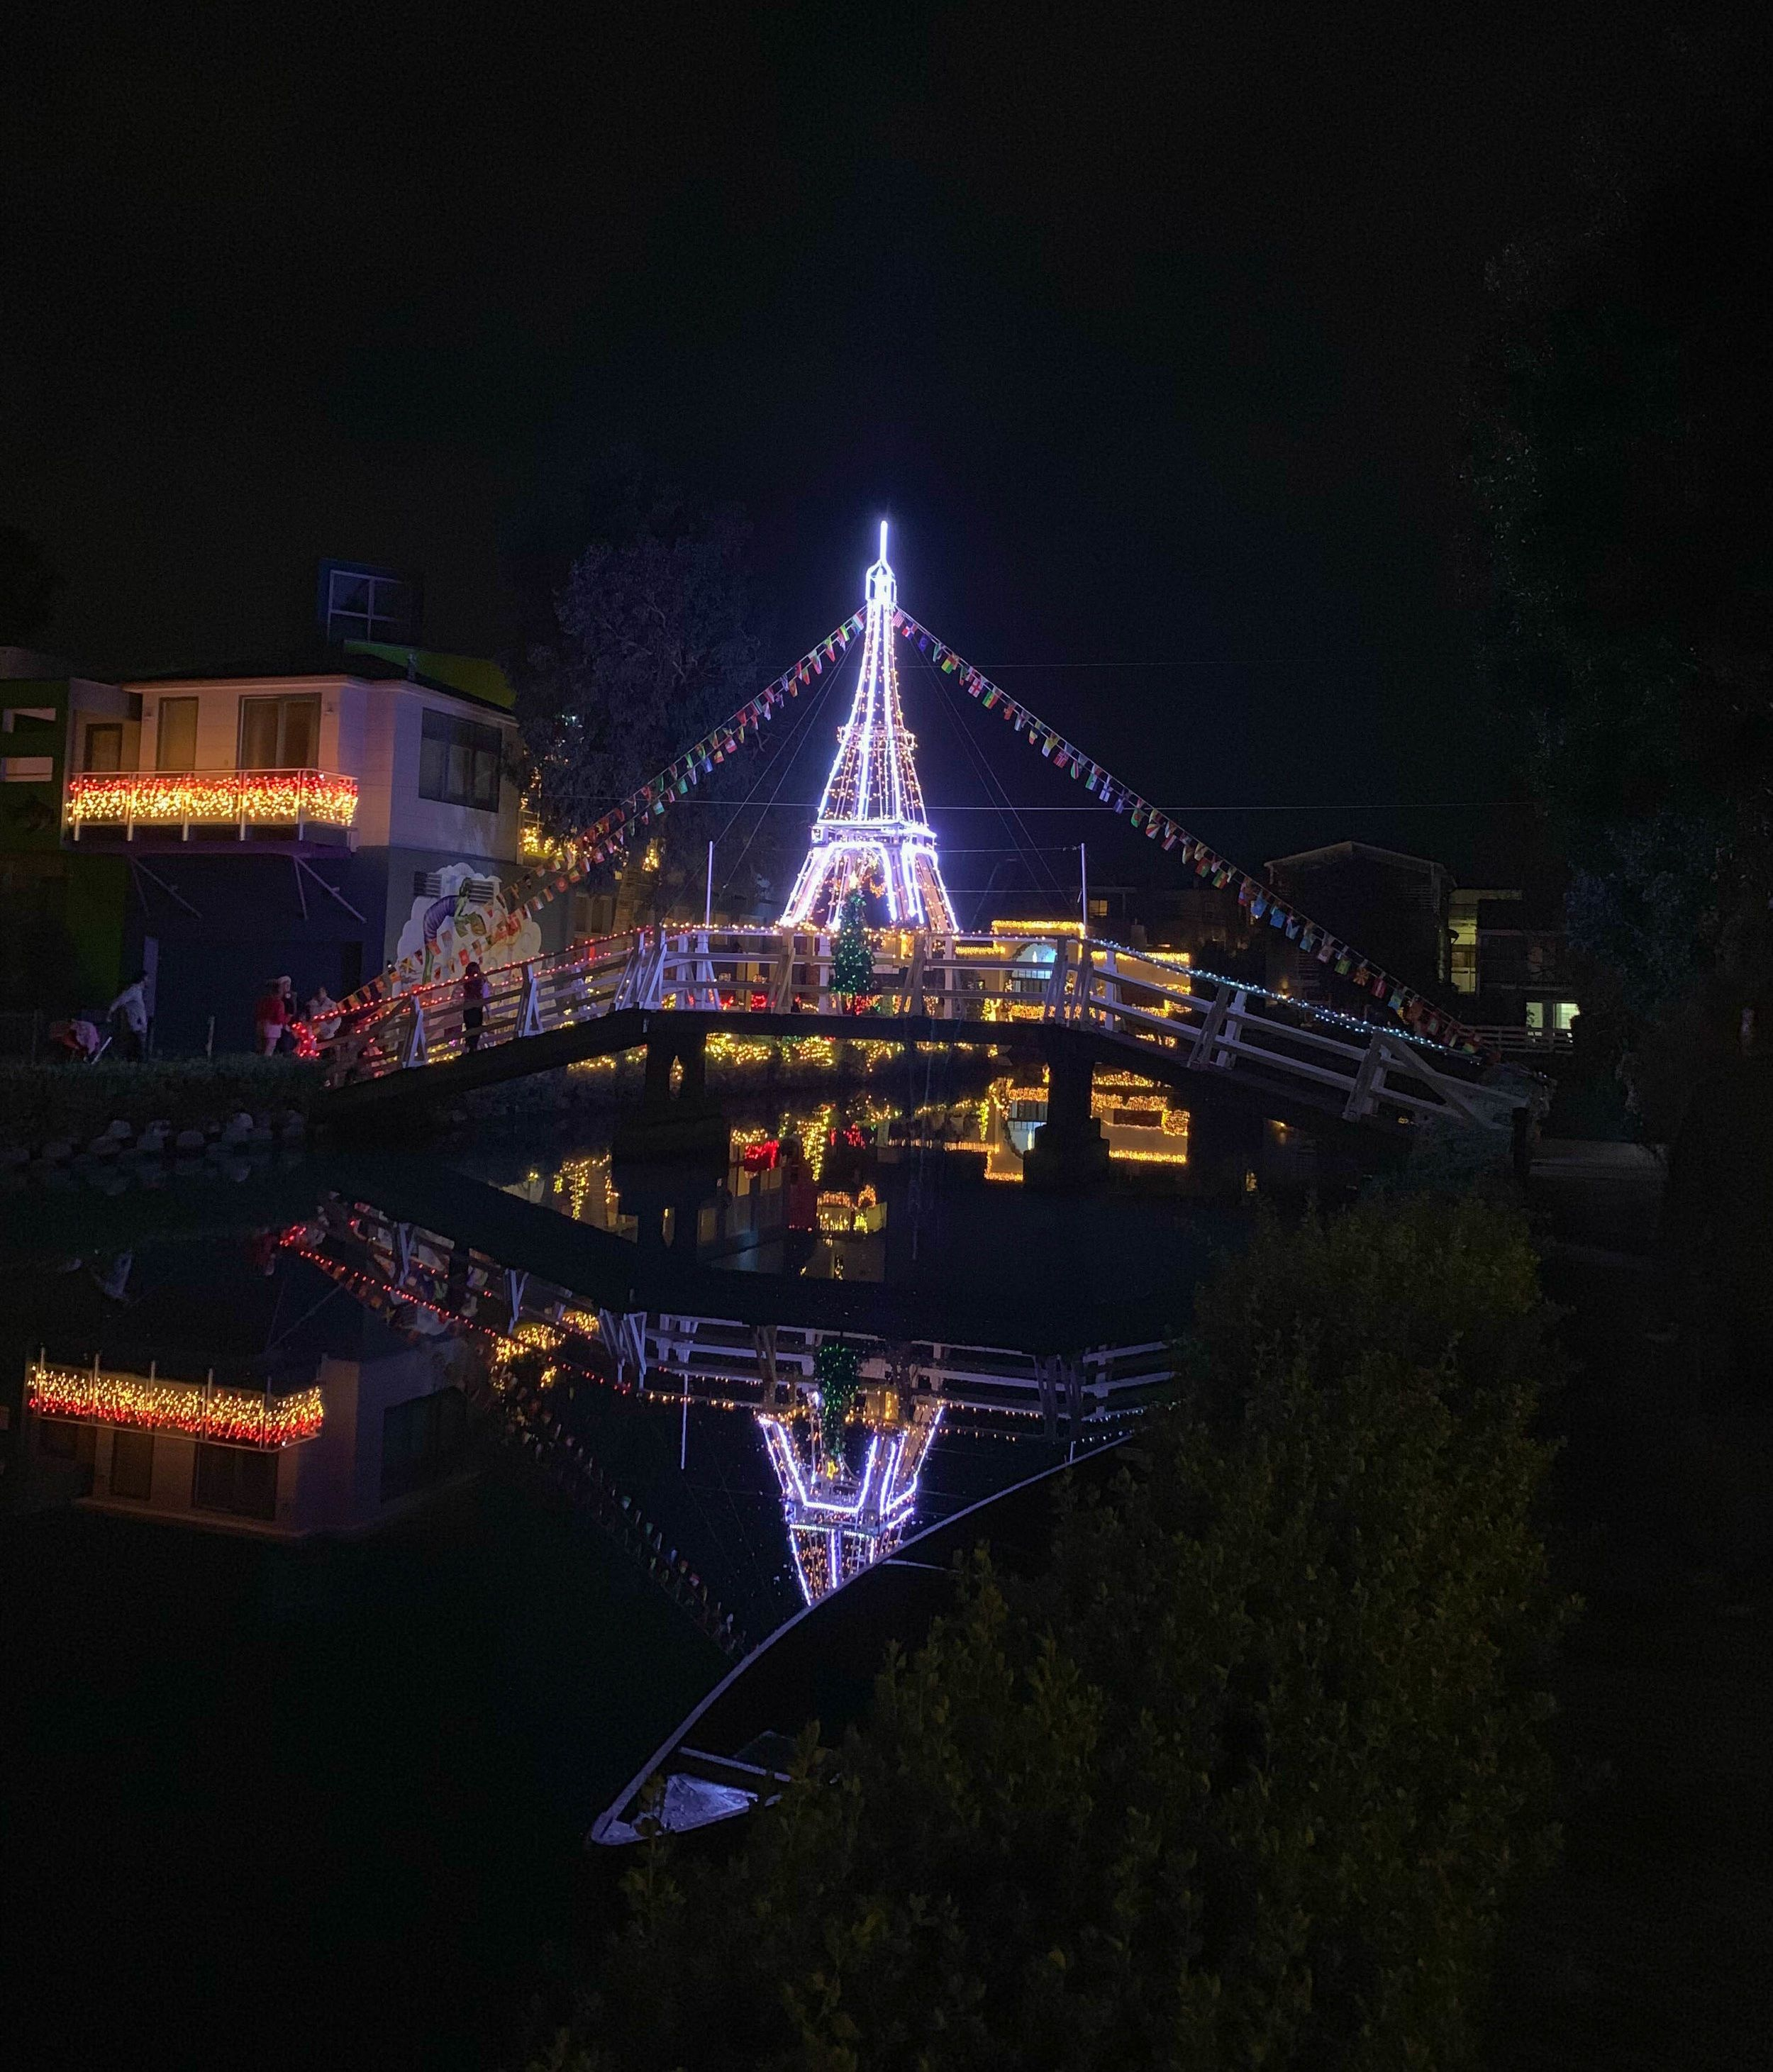 Christmas In Los Angeles Lights In The Venice Canals The Sweetest Escapes Canals Best Christmas Light Displays Best Christmas Lights